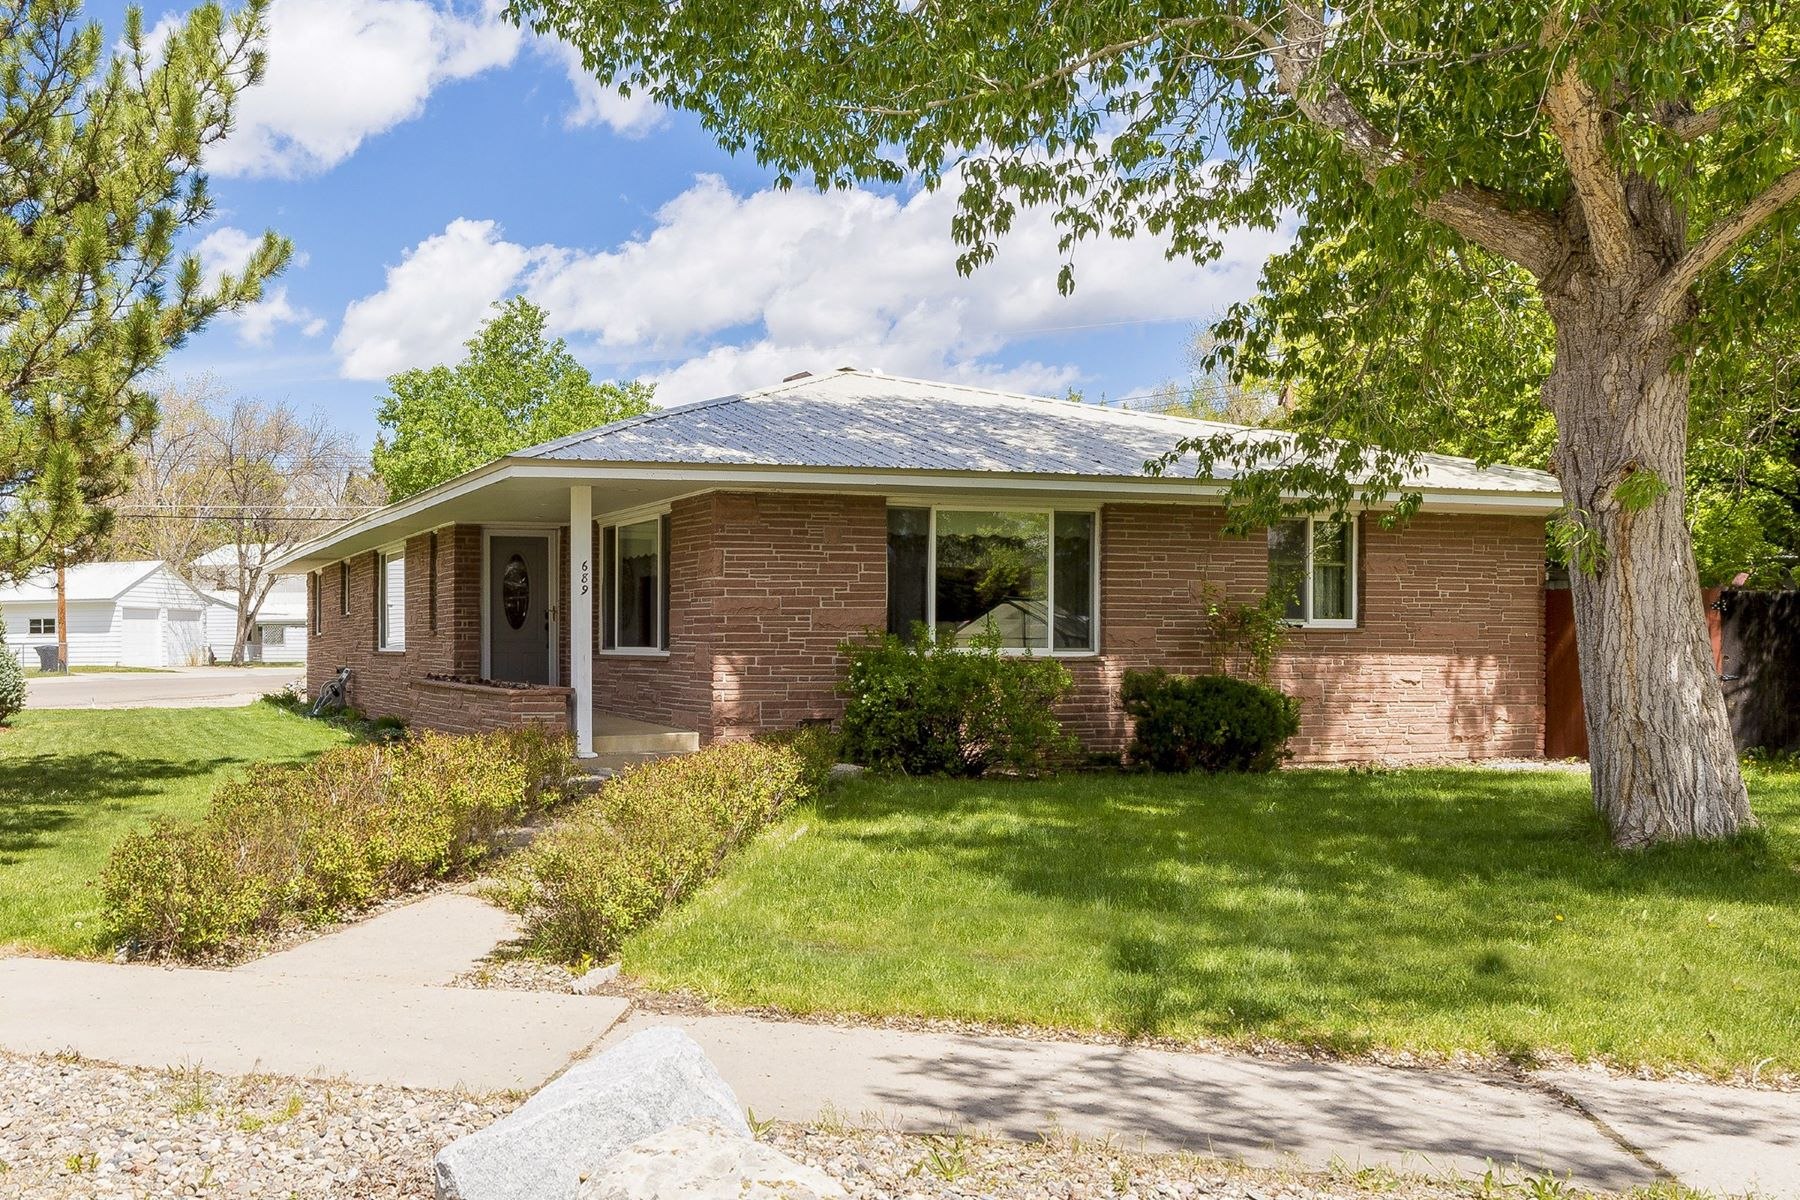 Single Family Home for Active at Immaculate Classic Mid-Century Ranch Home 689 Pershing St. Craig, Colorado 81625 United States